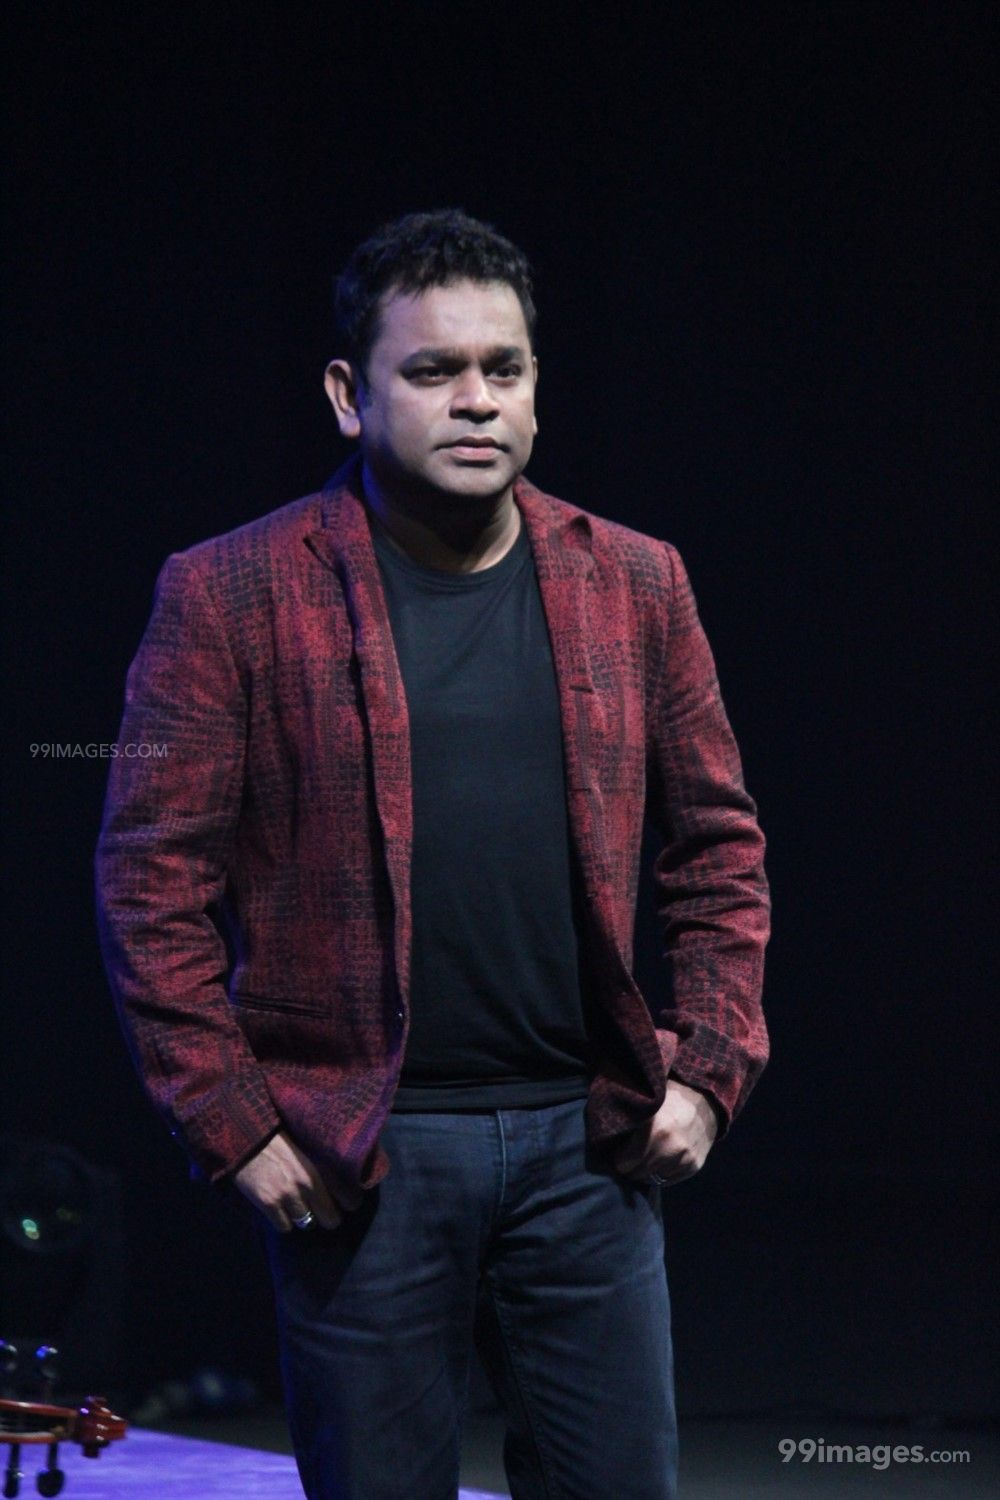 A. R. Rahman HD Wallpapers (Desktop Background / Android / iPhone) (1080p, 4k) (160381) - A. R. Rahman